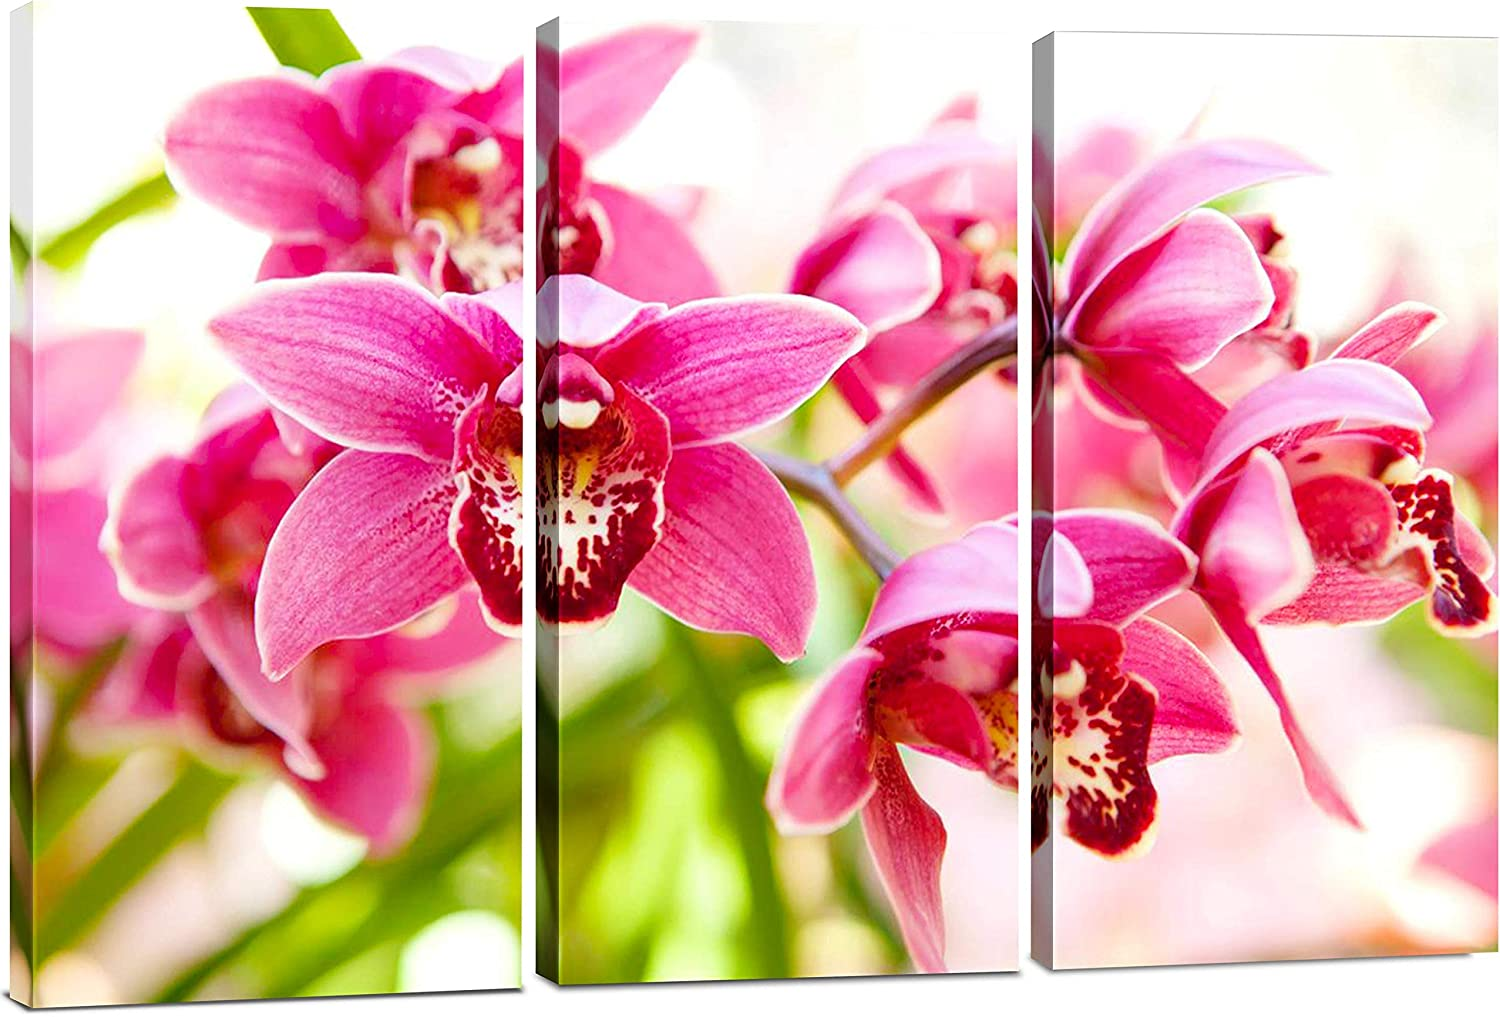 Amazon Com Pink Flower Wall Art Simple 3 Piece Orchid Wall Decor Minimalist Floral Prints Small Botanical Pictures Framed Tropical Painting Print Set Canvas Wall Art For Bedroom Bathroom Office Posters